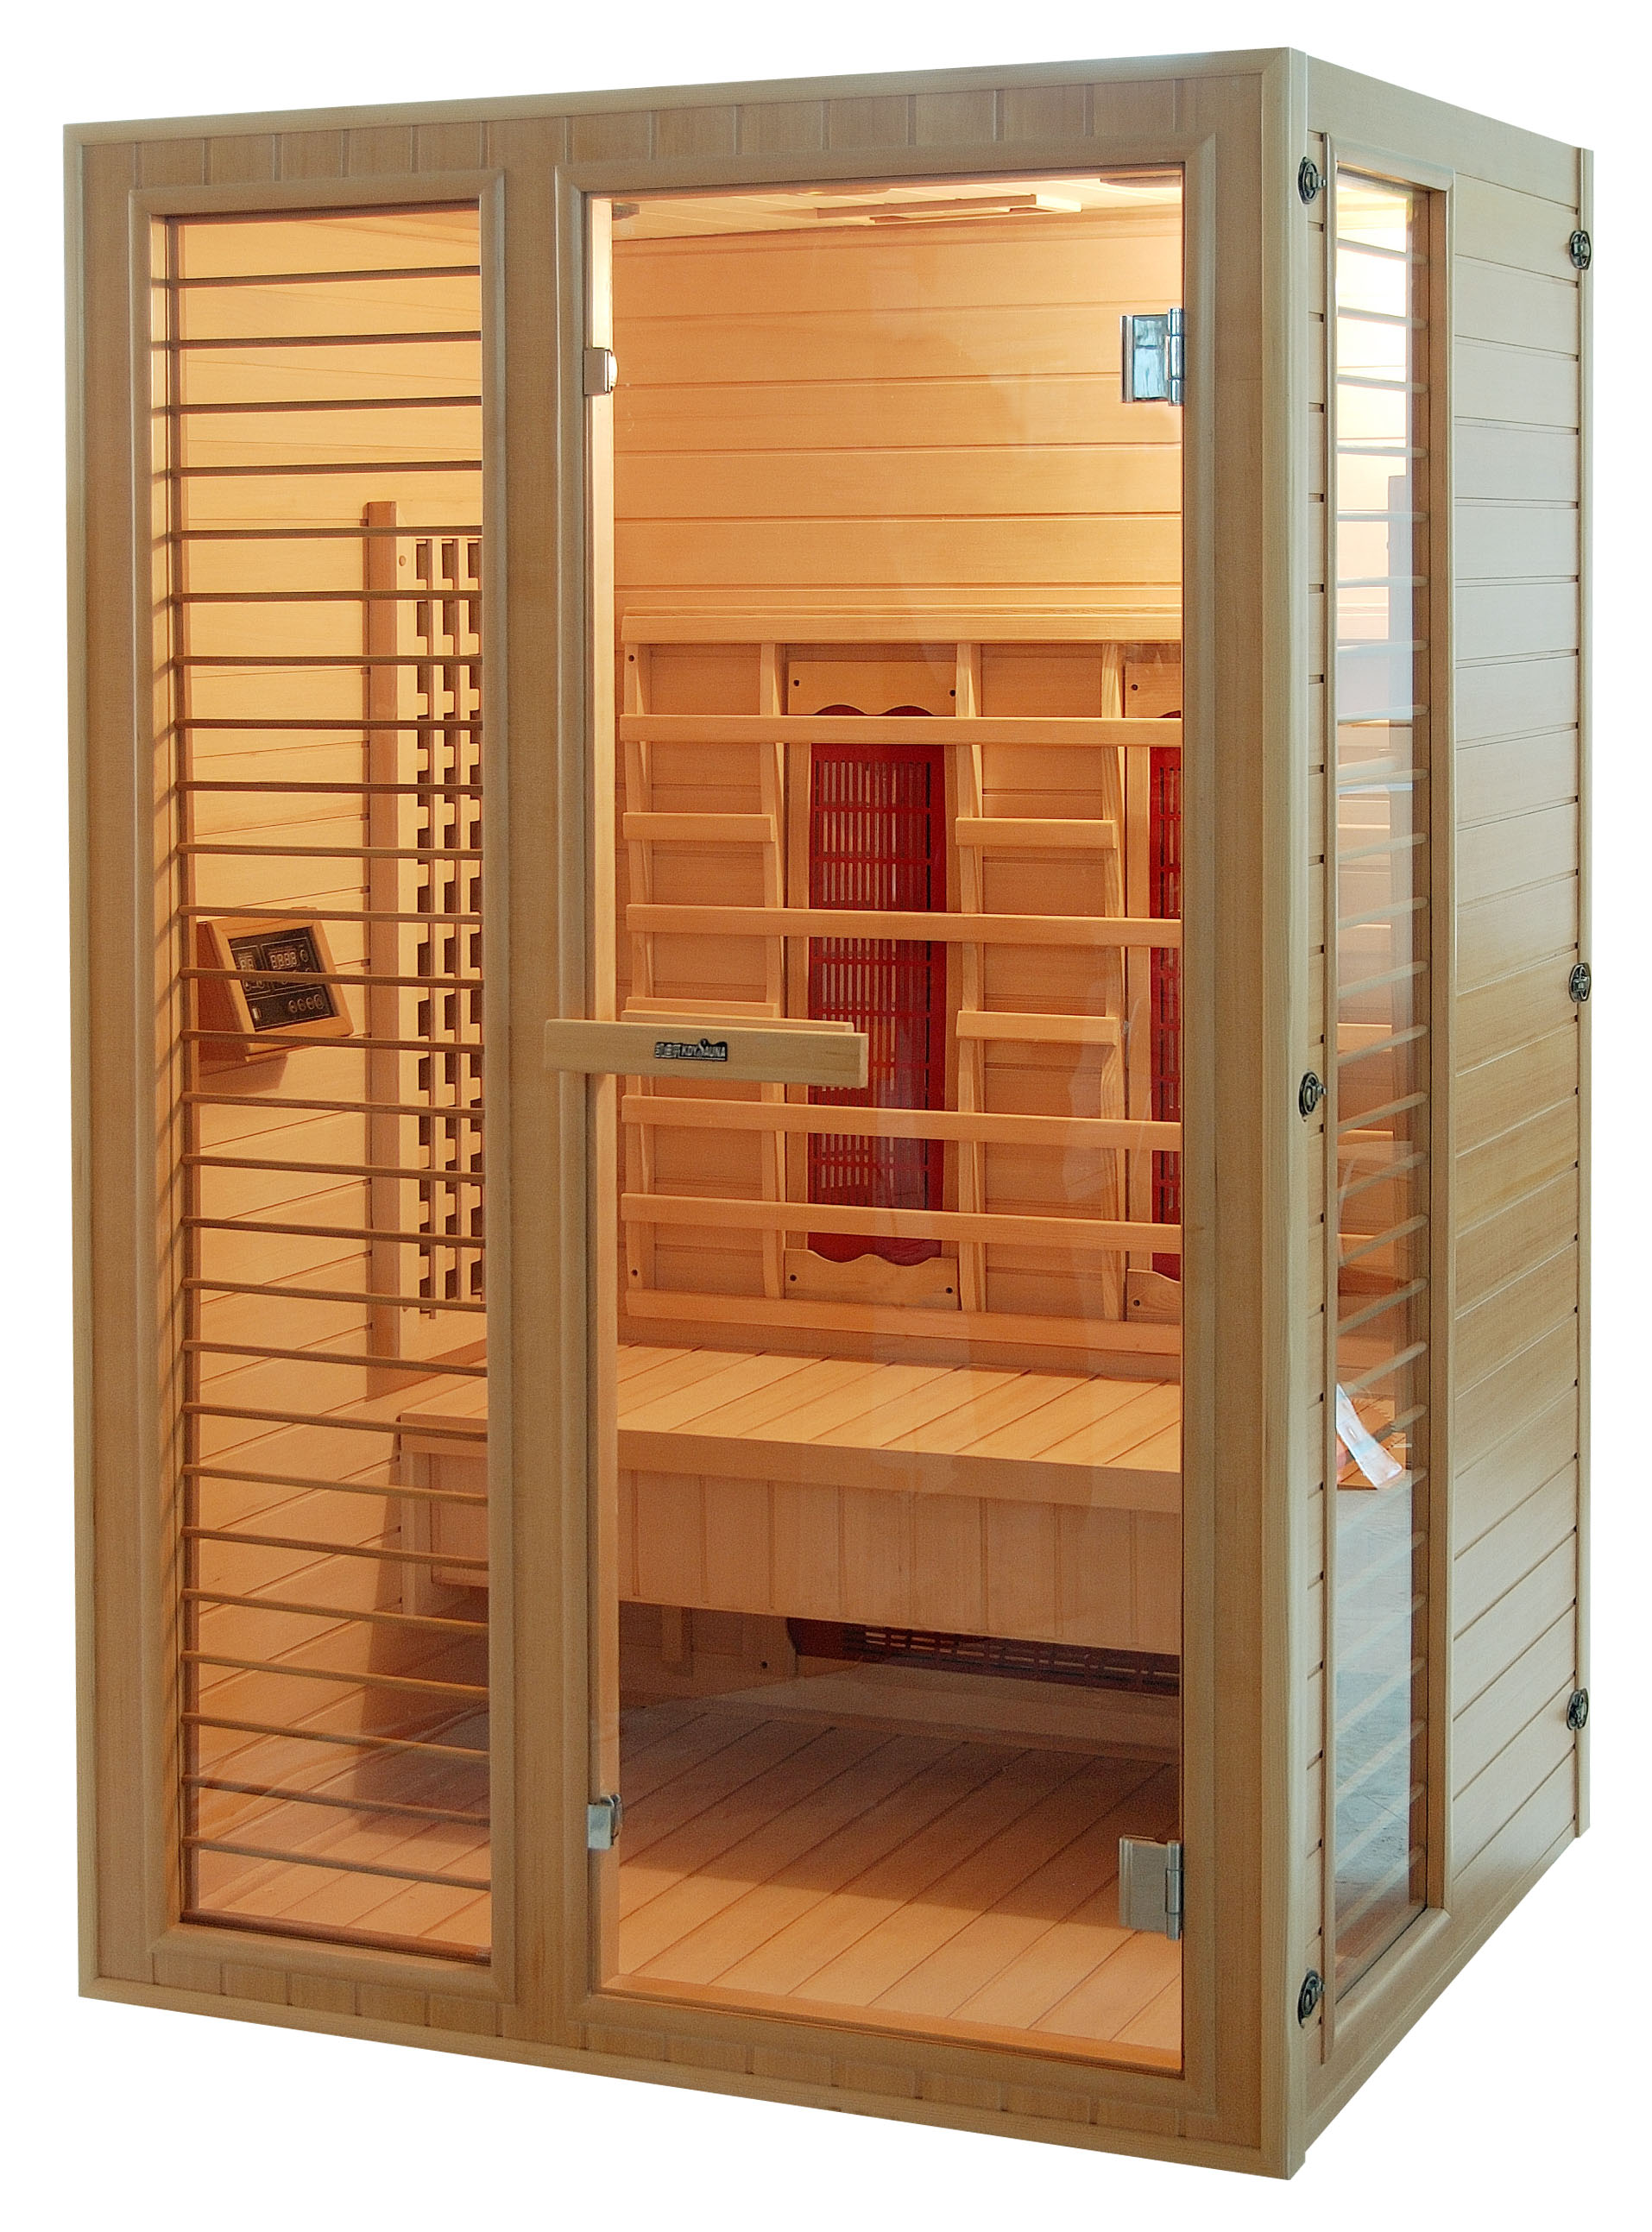 Cheapest Home portable dry steam sauna room